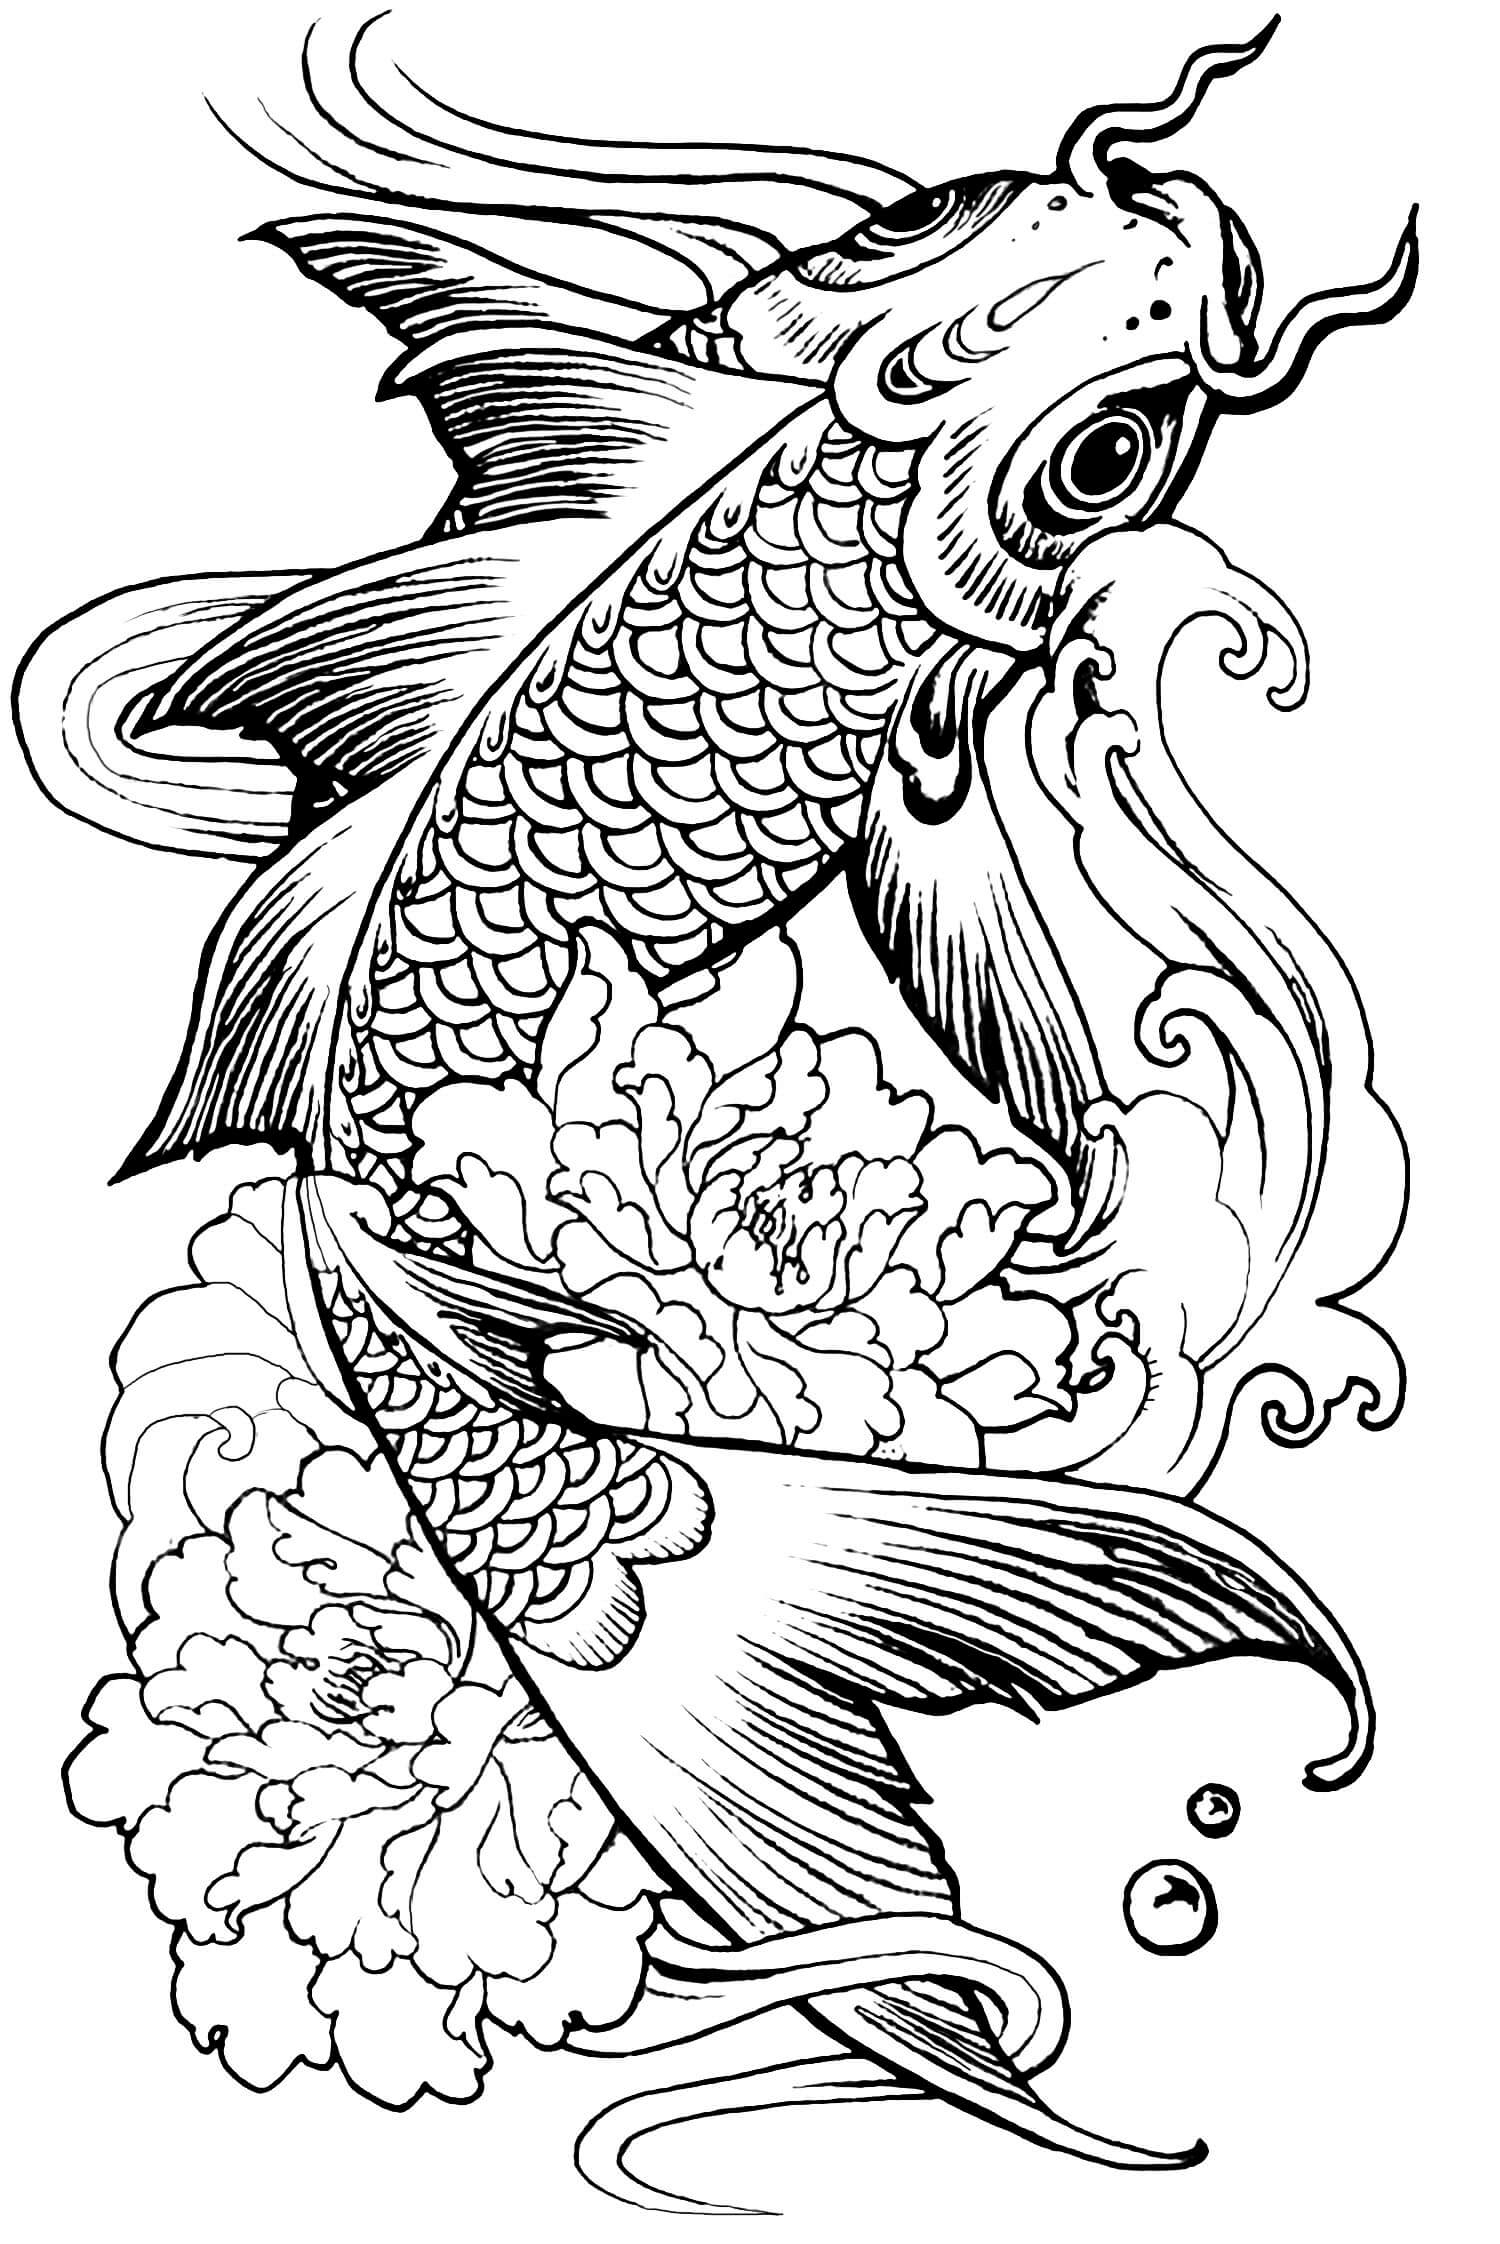 Finished Coloring Pages for Adults - Coloring Pages for Adults Difficult Animals 35